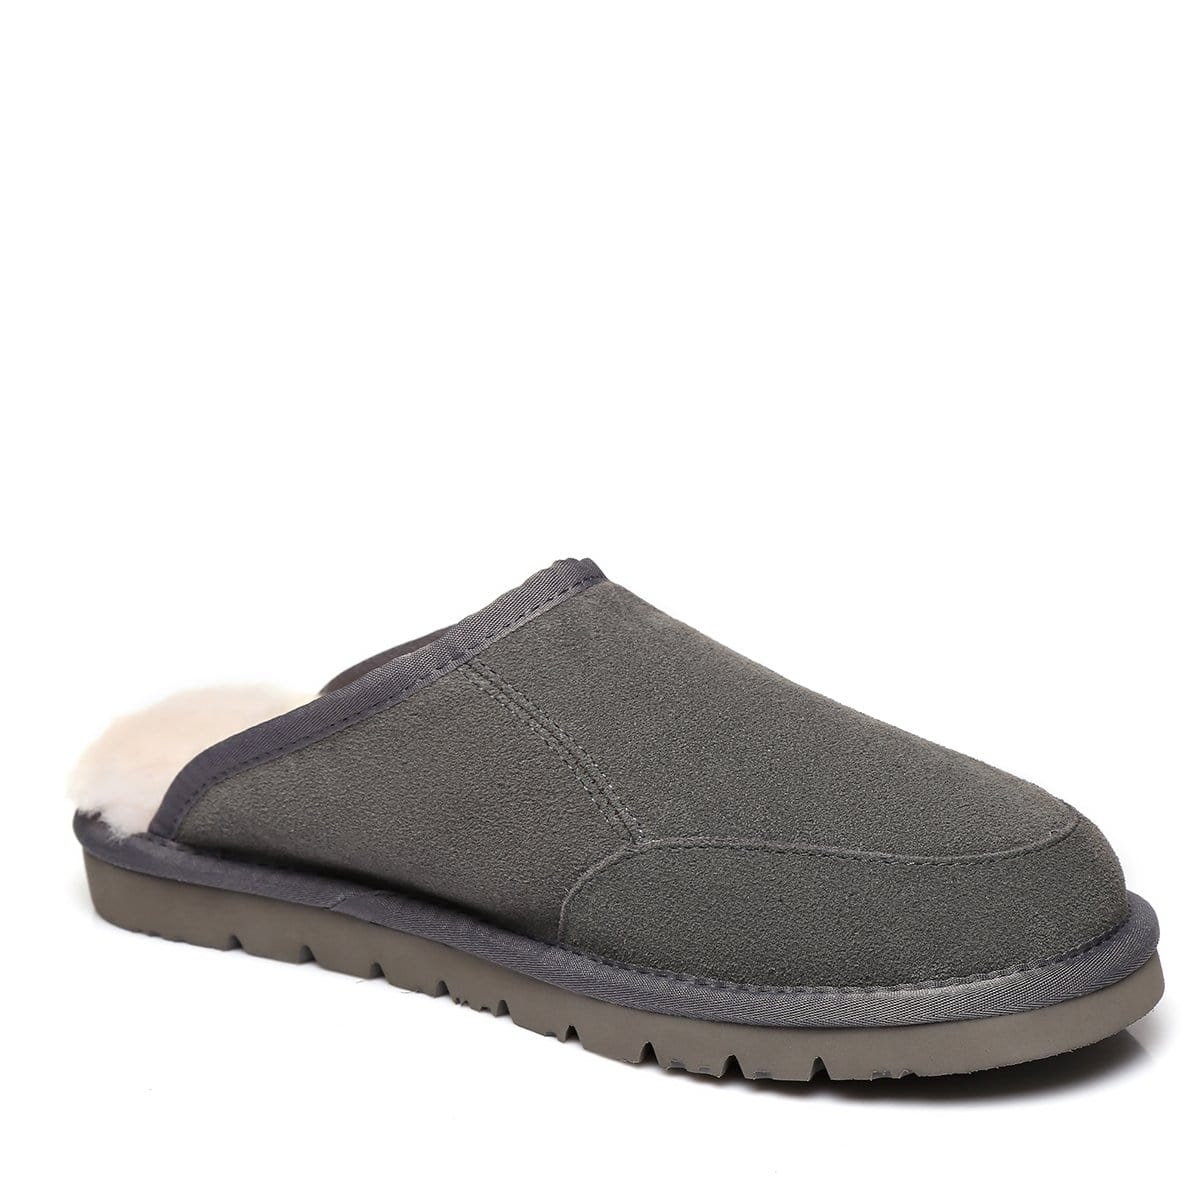 UGG Ergo Slipper